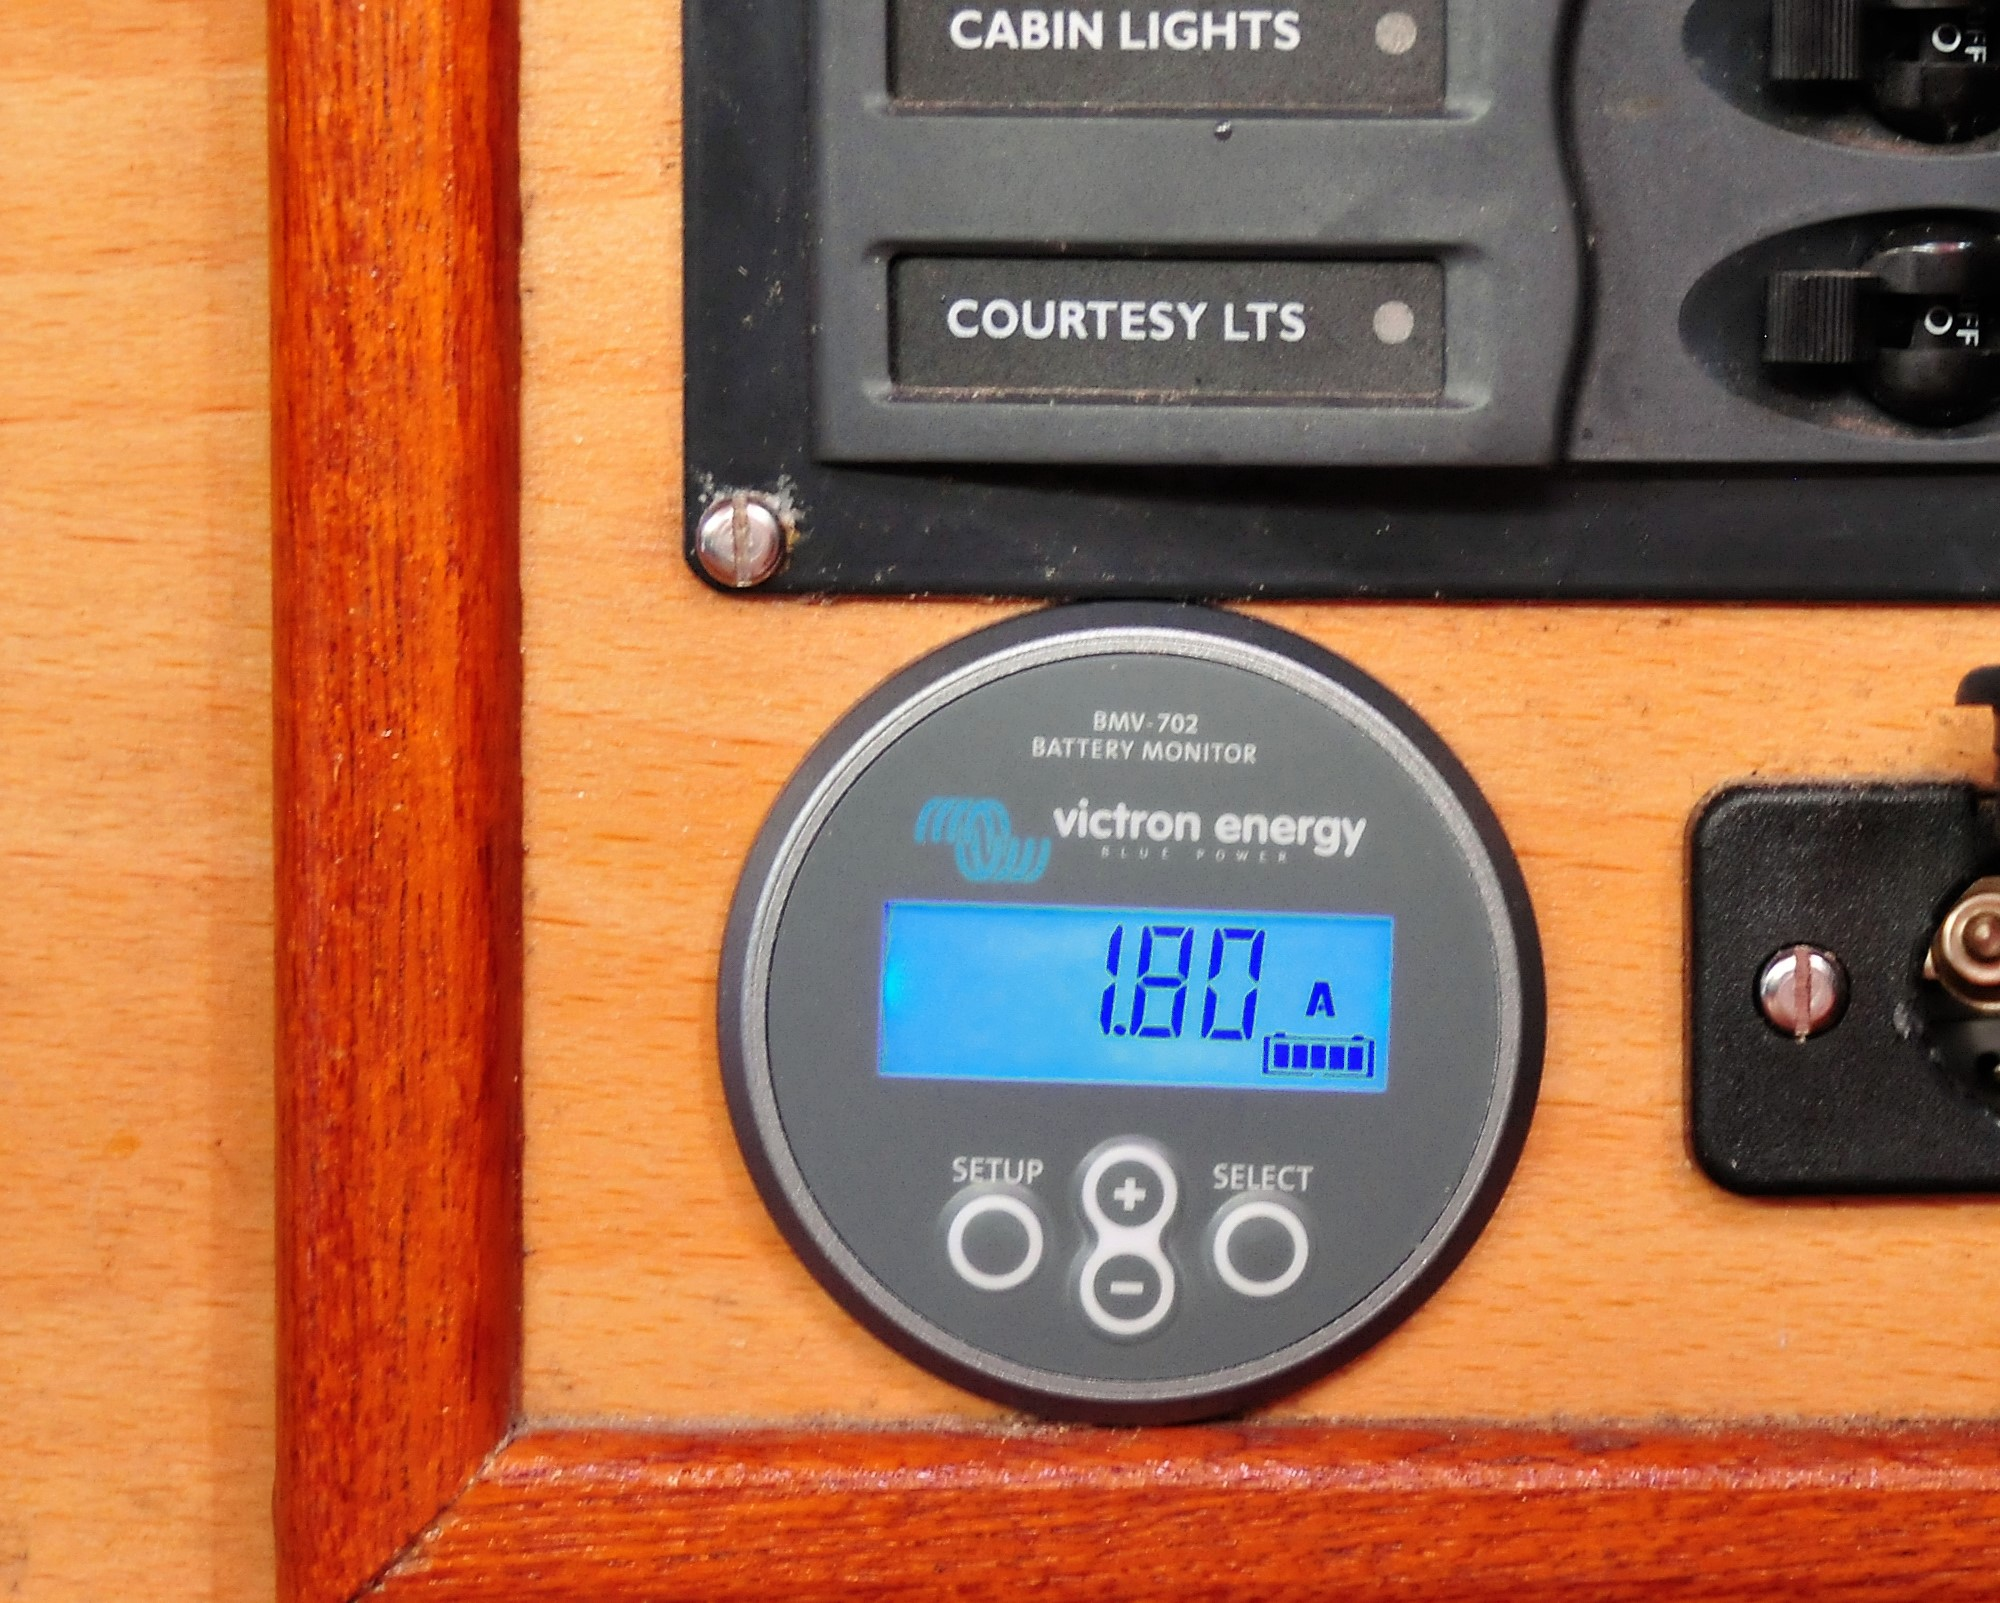 Solar Panels The Quiet Sailing Solution Victron Energy Wind Charge Controller With Shunt Mode Methode Circuit Diagram Itself Is Quite Neat But It Necessary To Connect Battery Cables So Does Require A Bit Of Space I Overcame Problem Where Put